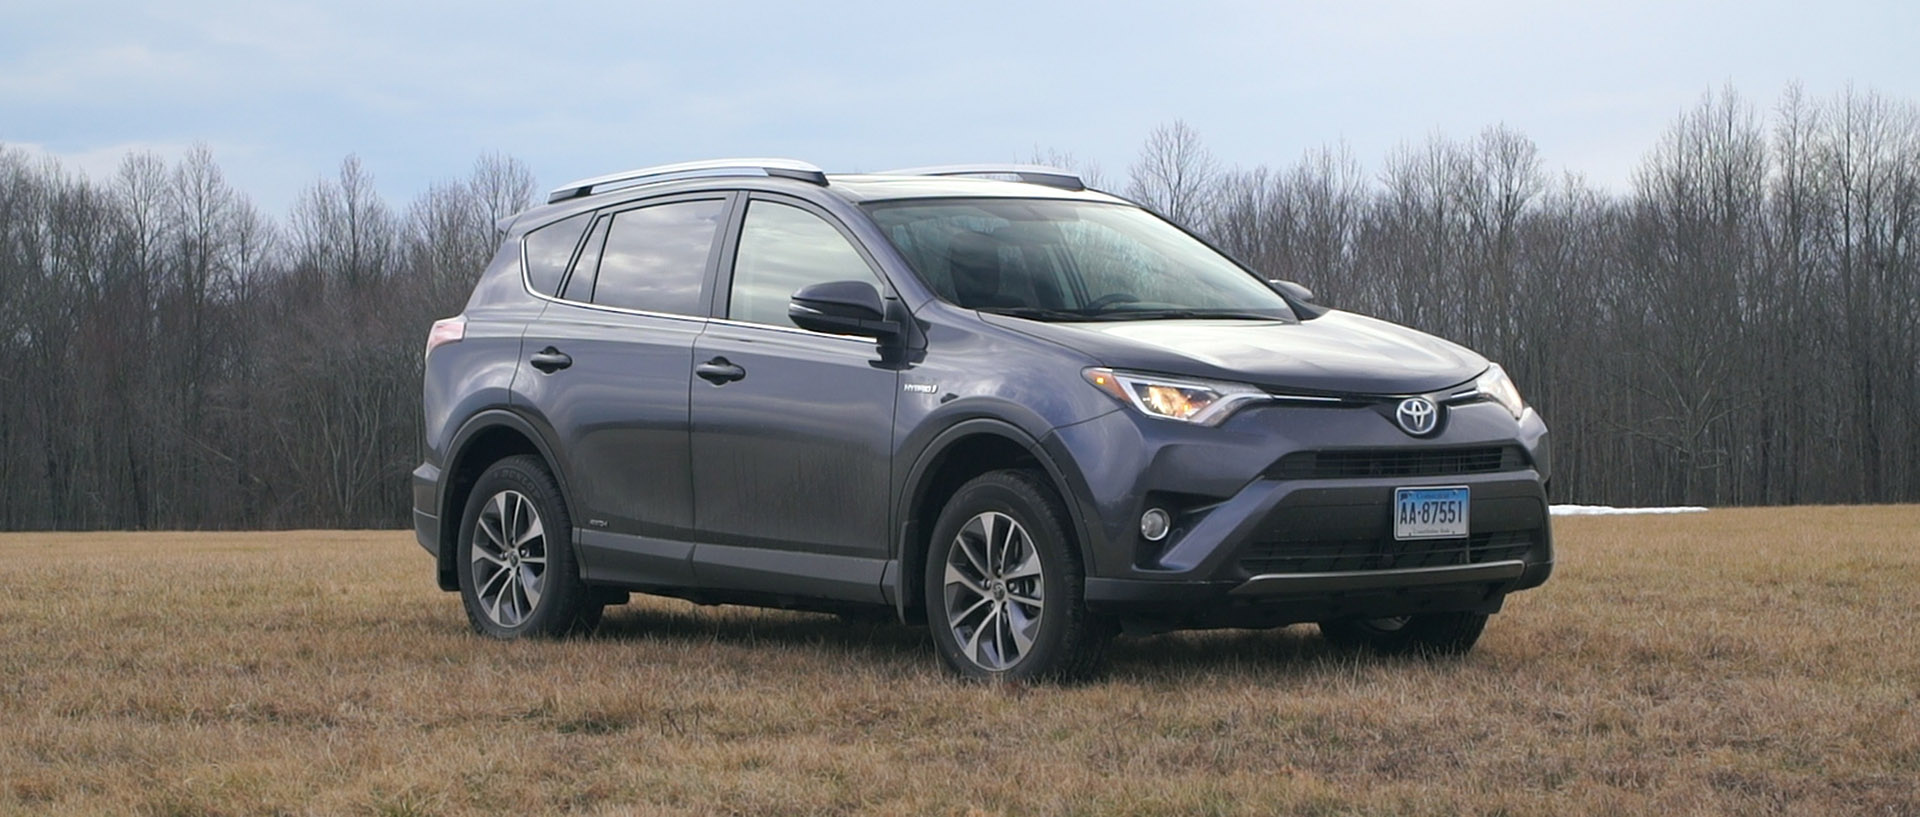 Toyota Rav4 Fuel Consumption 2016 Toyota Rav4 Hybrid Is A Challenger Consumer Reports